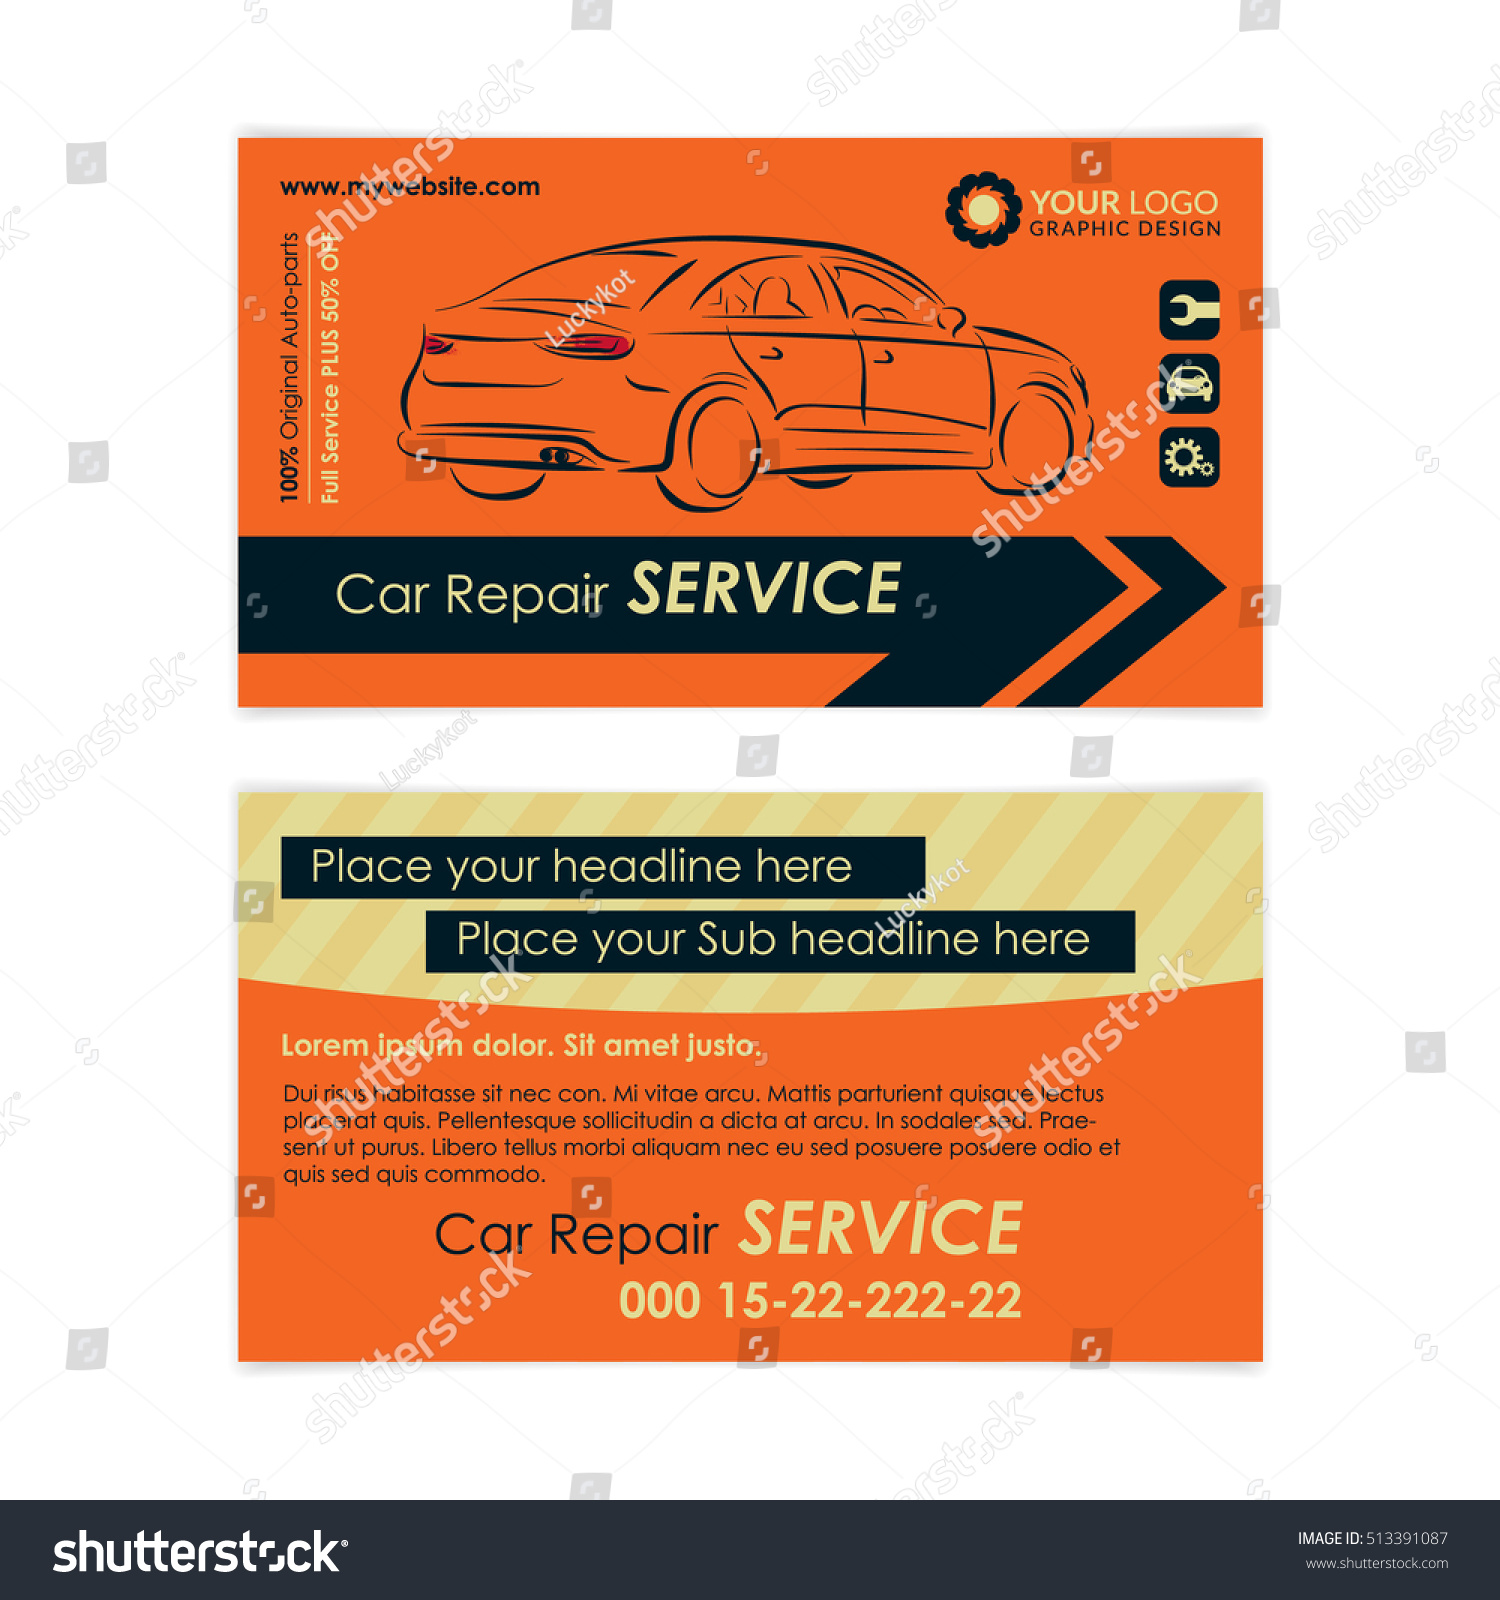 Lovely Gallery Of Auto Repair Business Card - Business Cards and ...